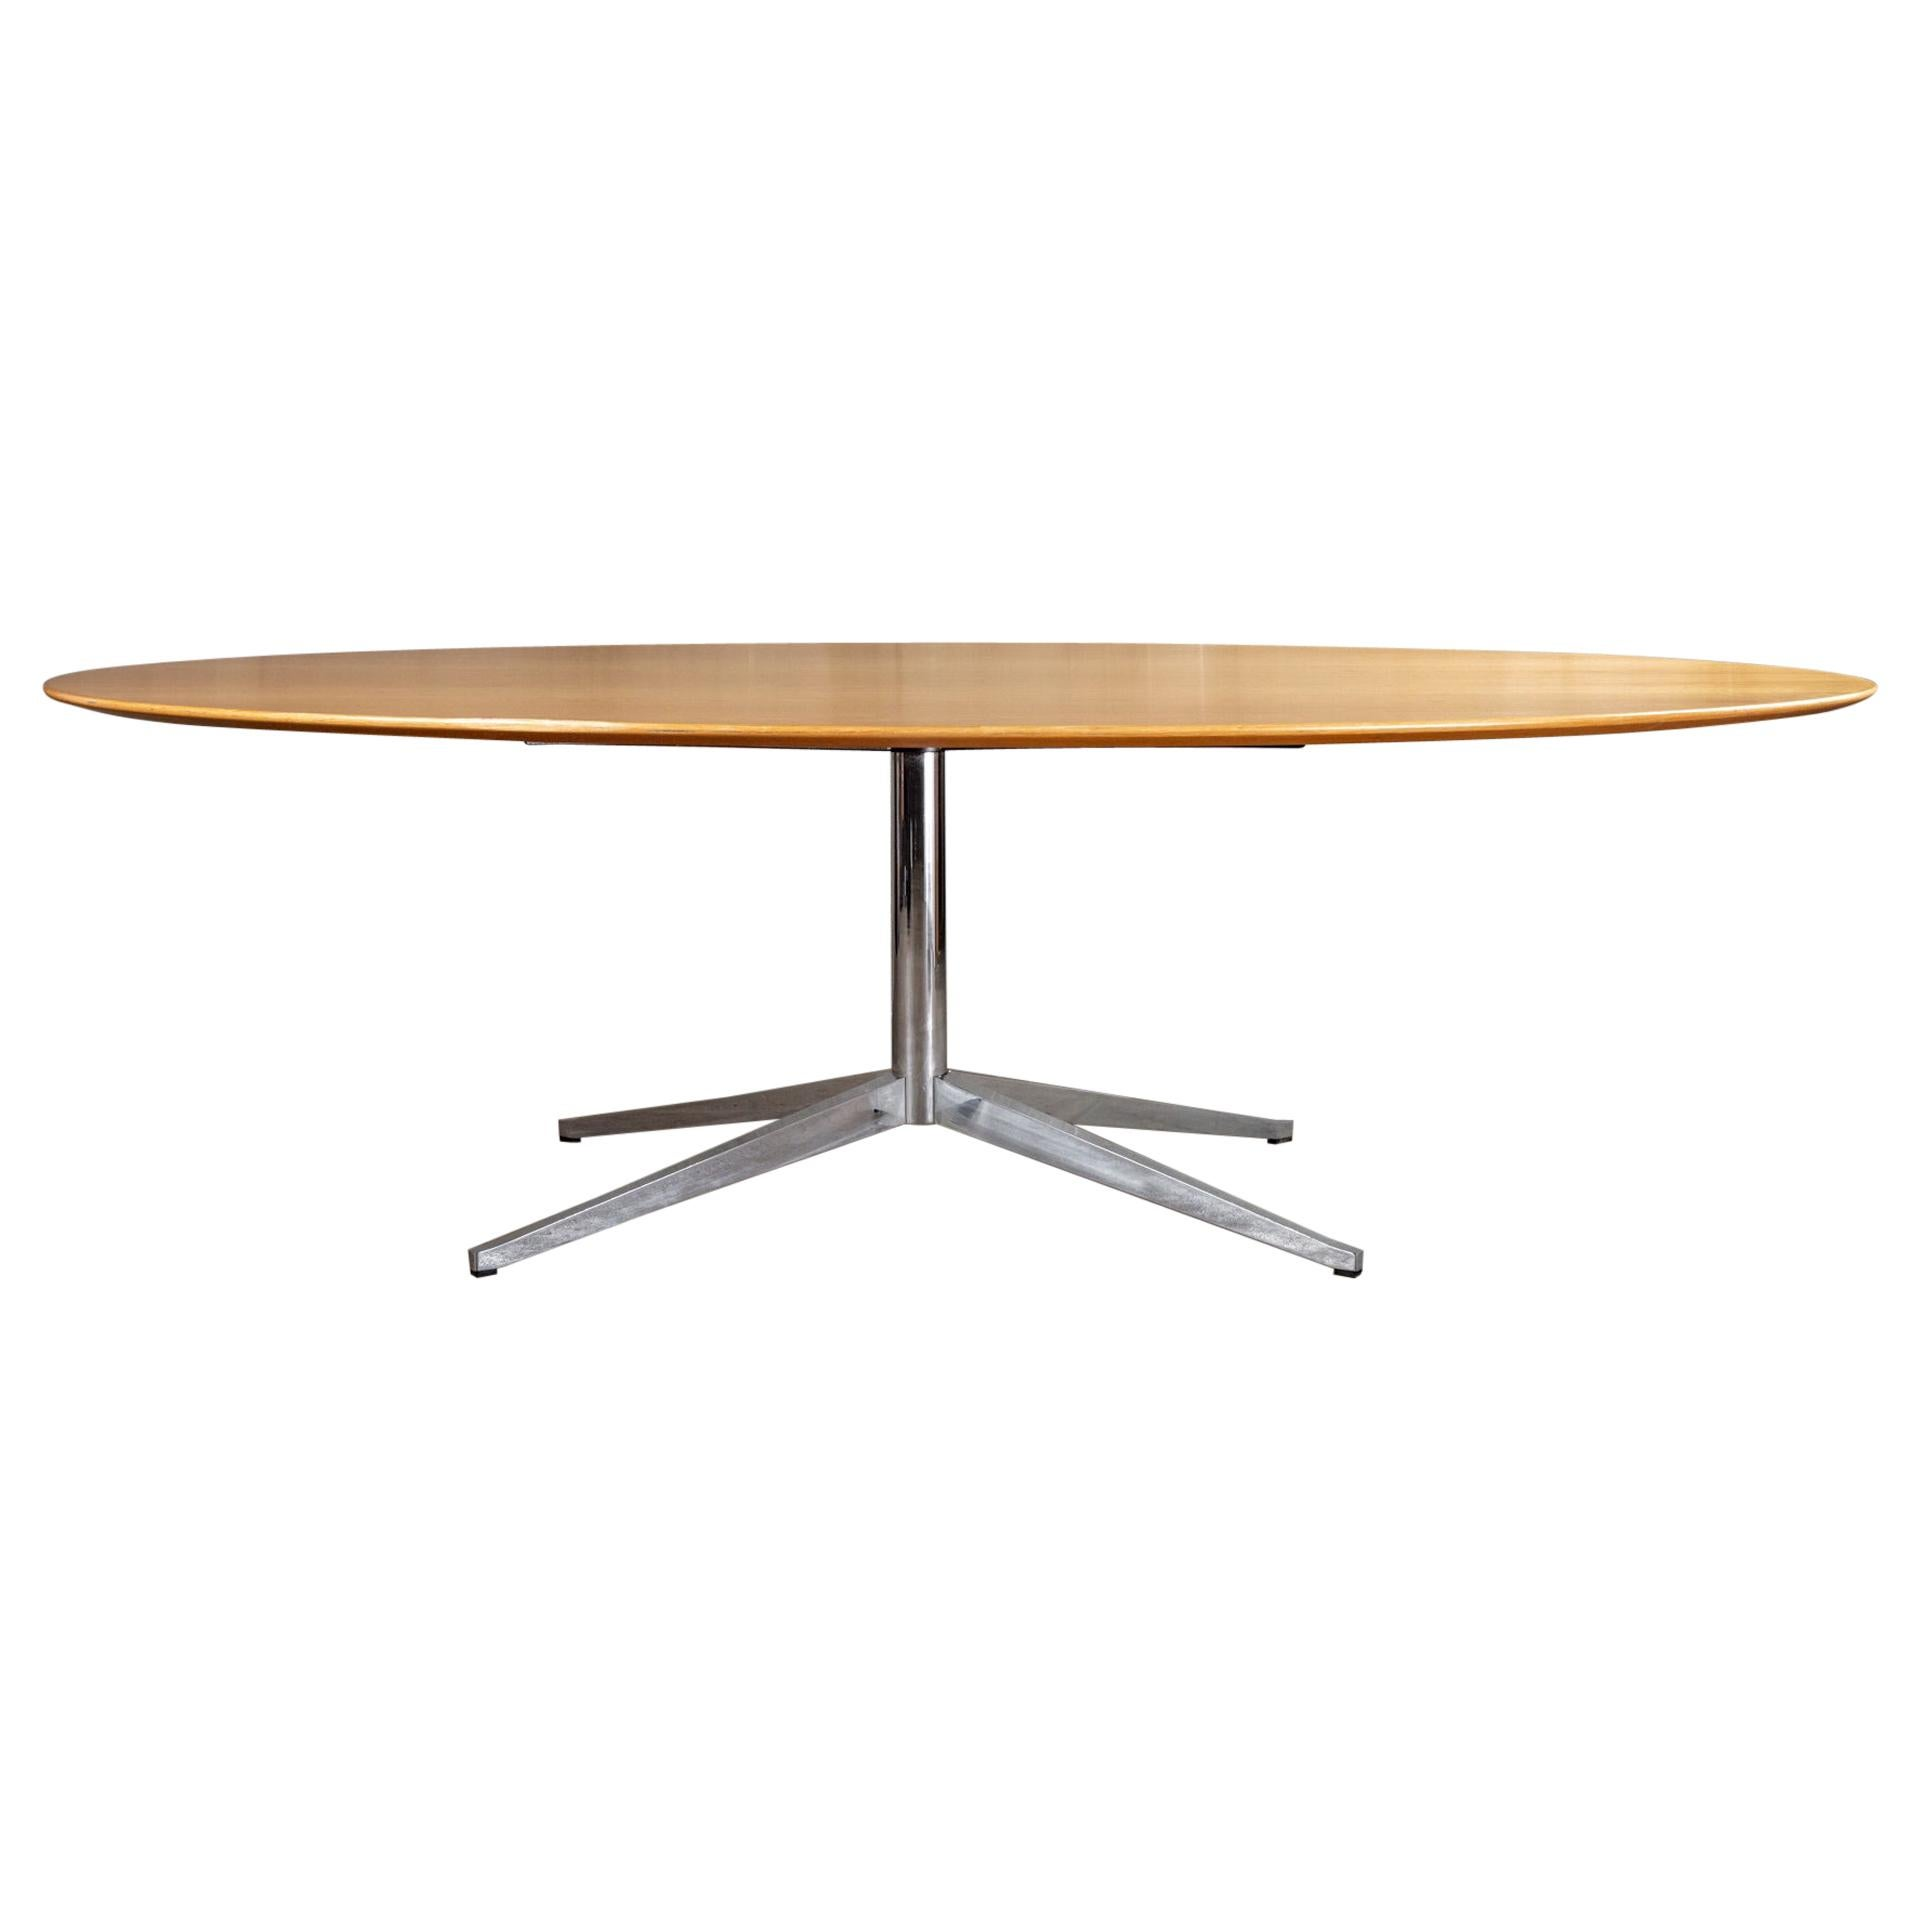 Florence Knoll Oval Dining Table